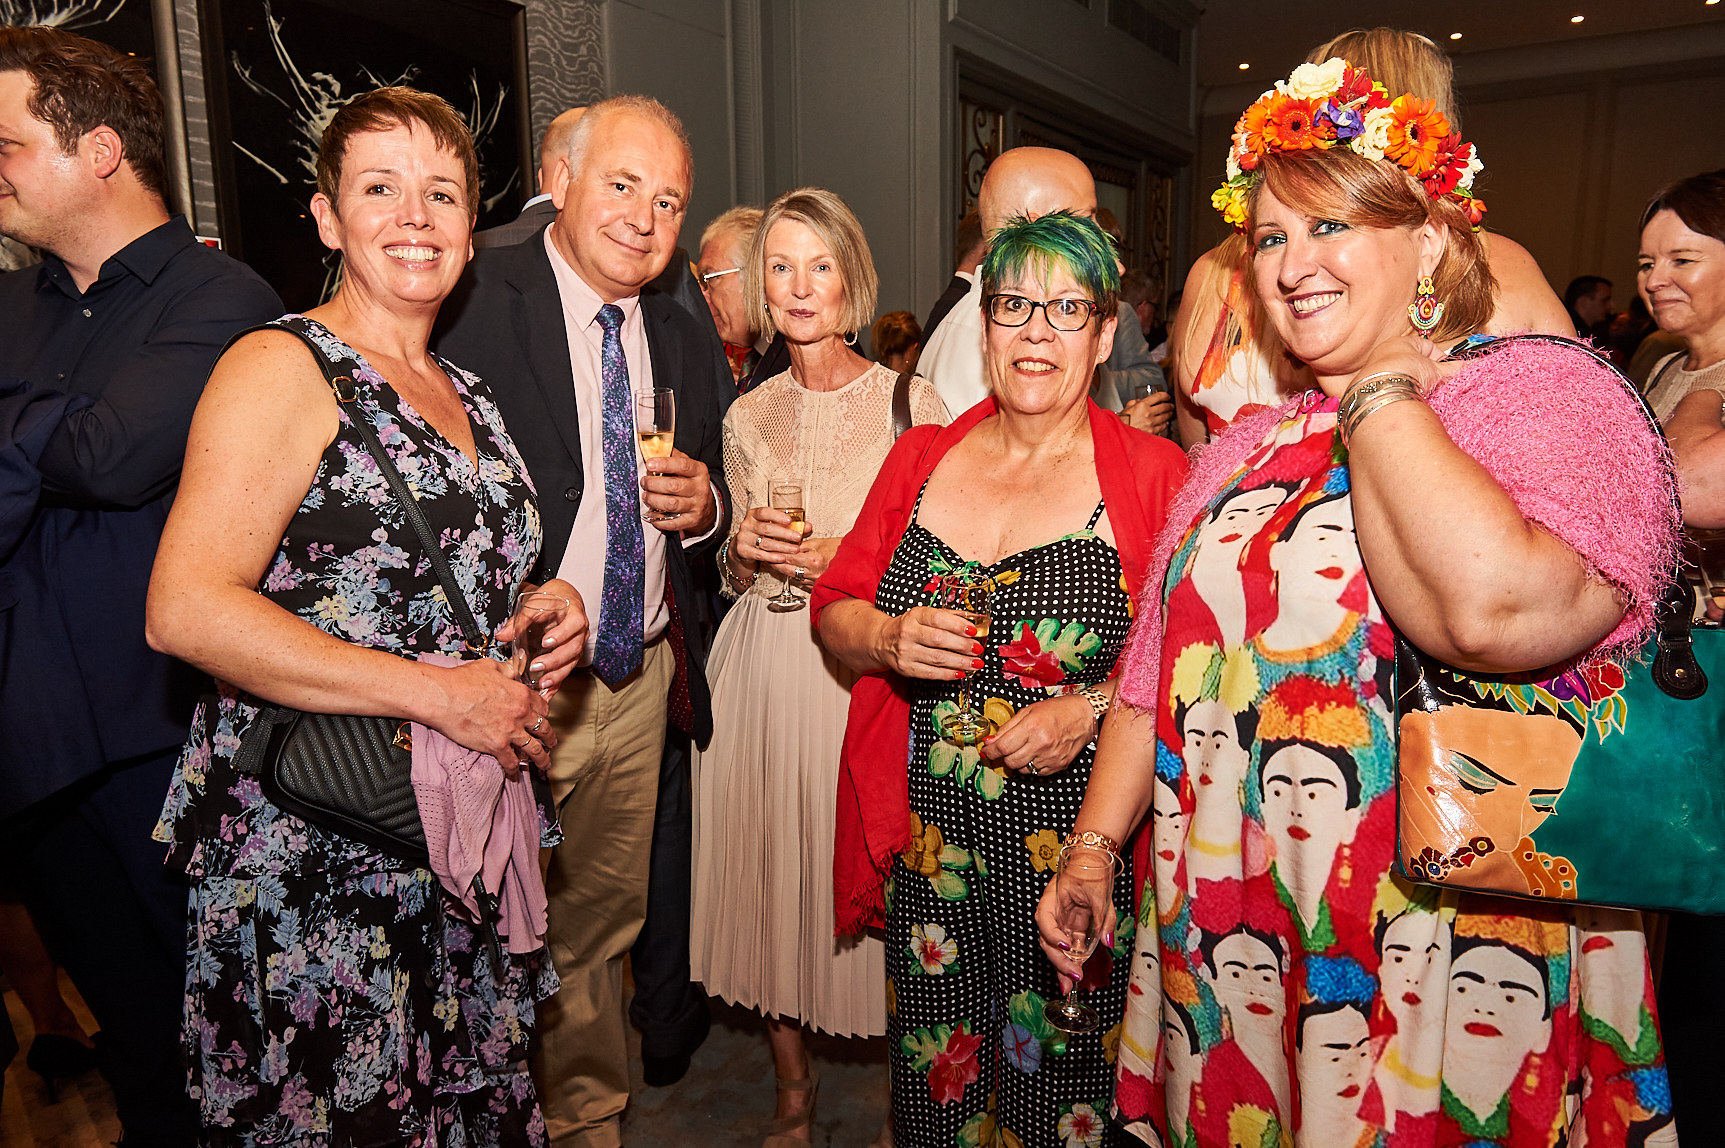 Above: (far right) Rosie Trow in Frida Kahlo mode at The Retas with customers (left-right) Cards 2 Confetti's Denise Keers and Nick O'Brien, Cilla & Camilla's Sally Ann Palmer and Nikki Weir.